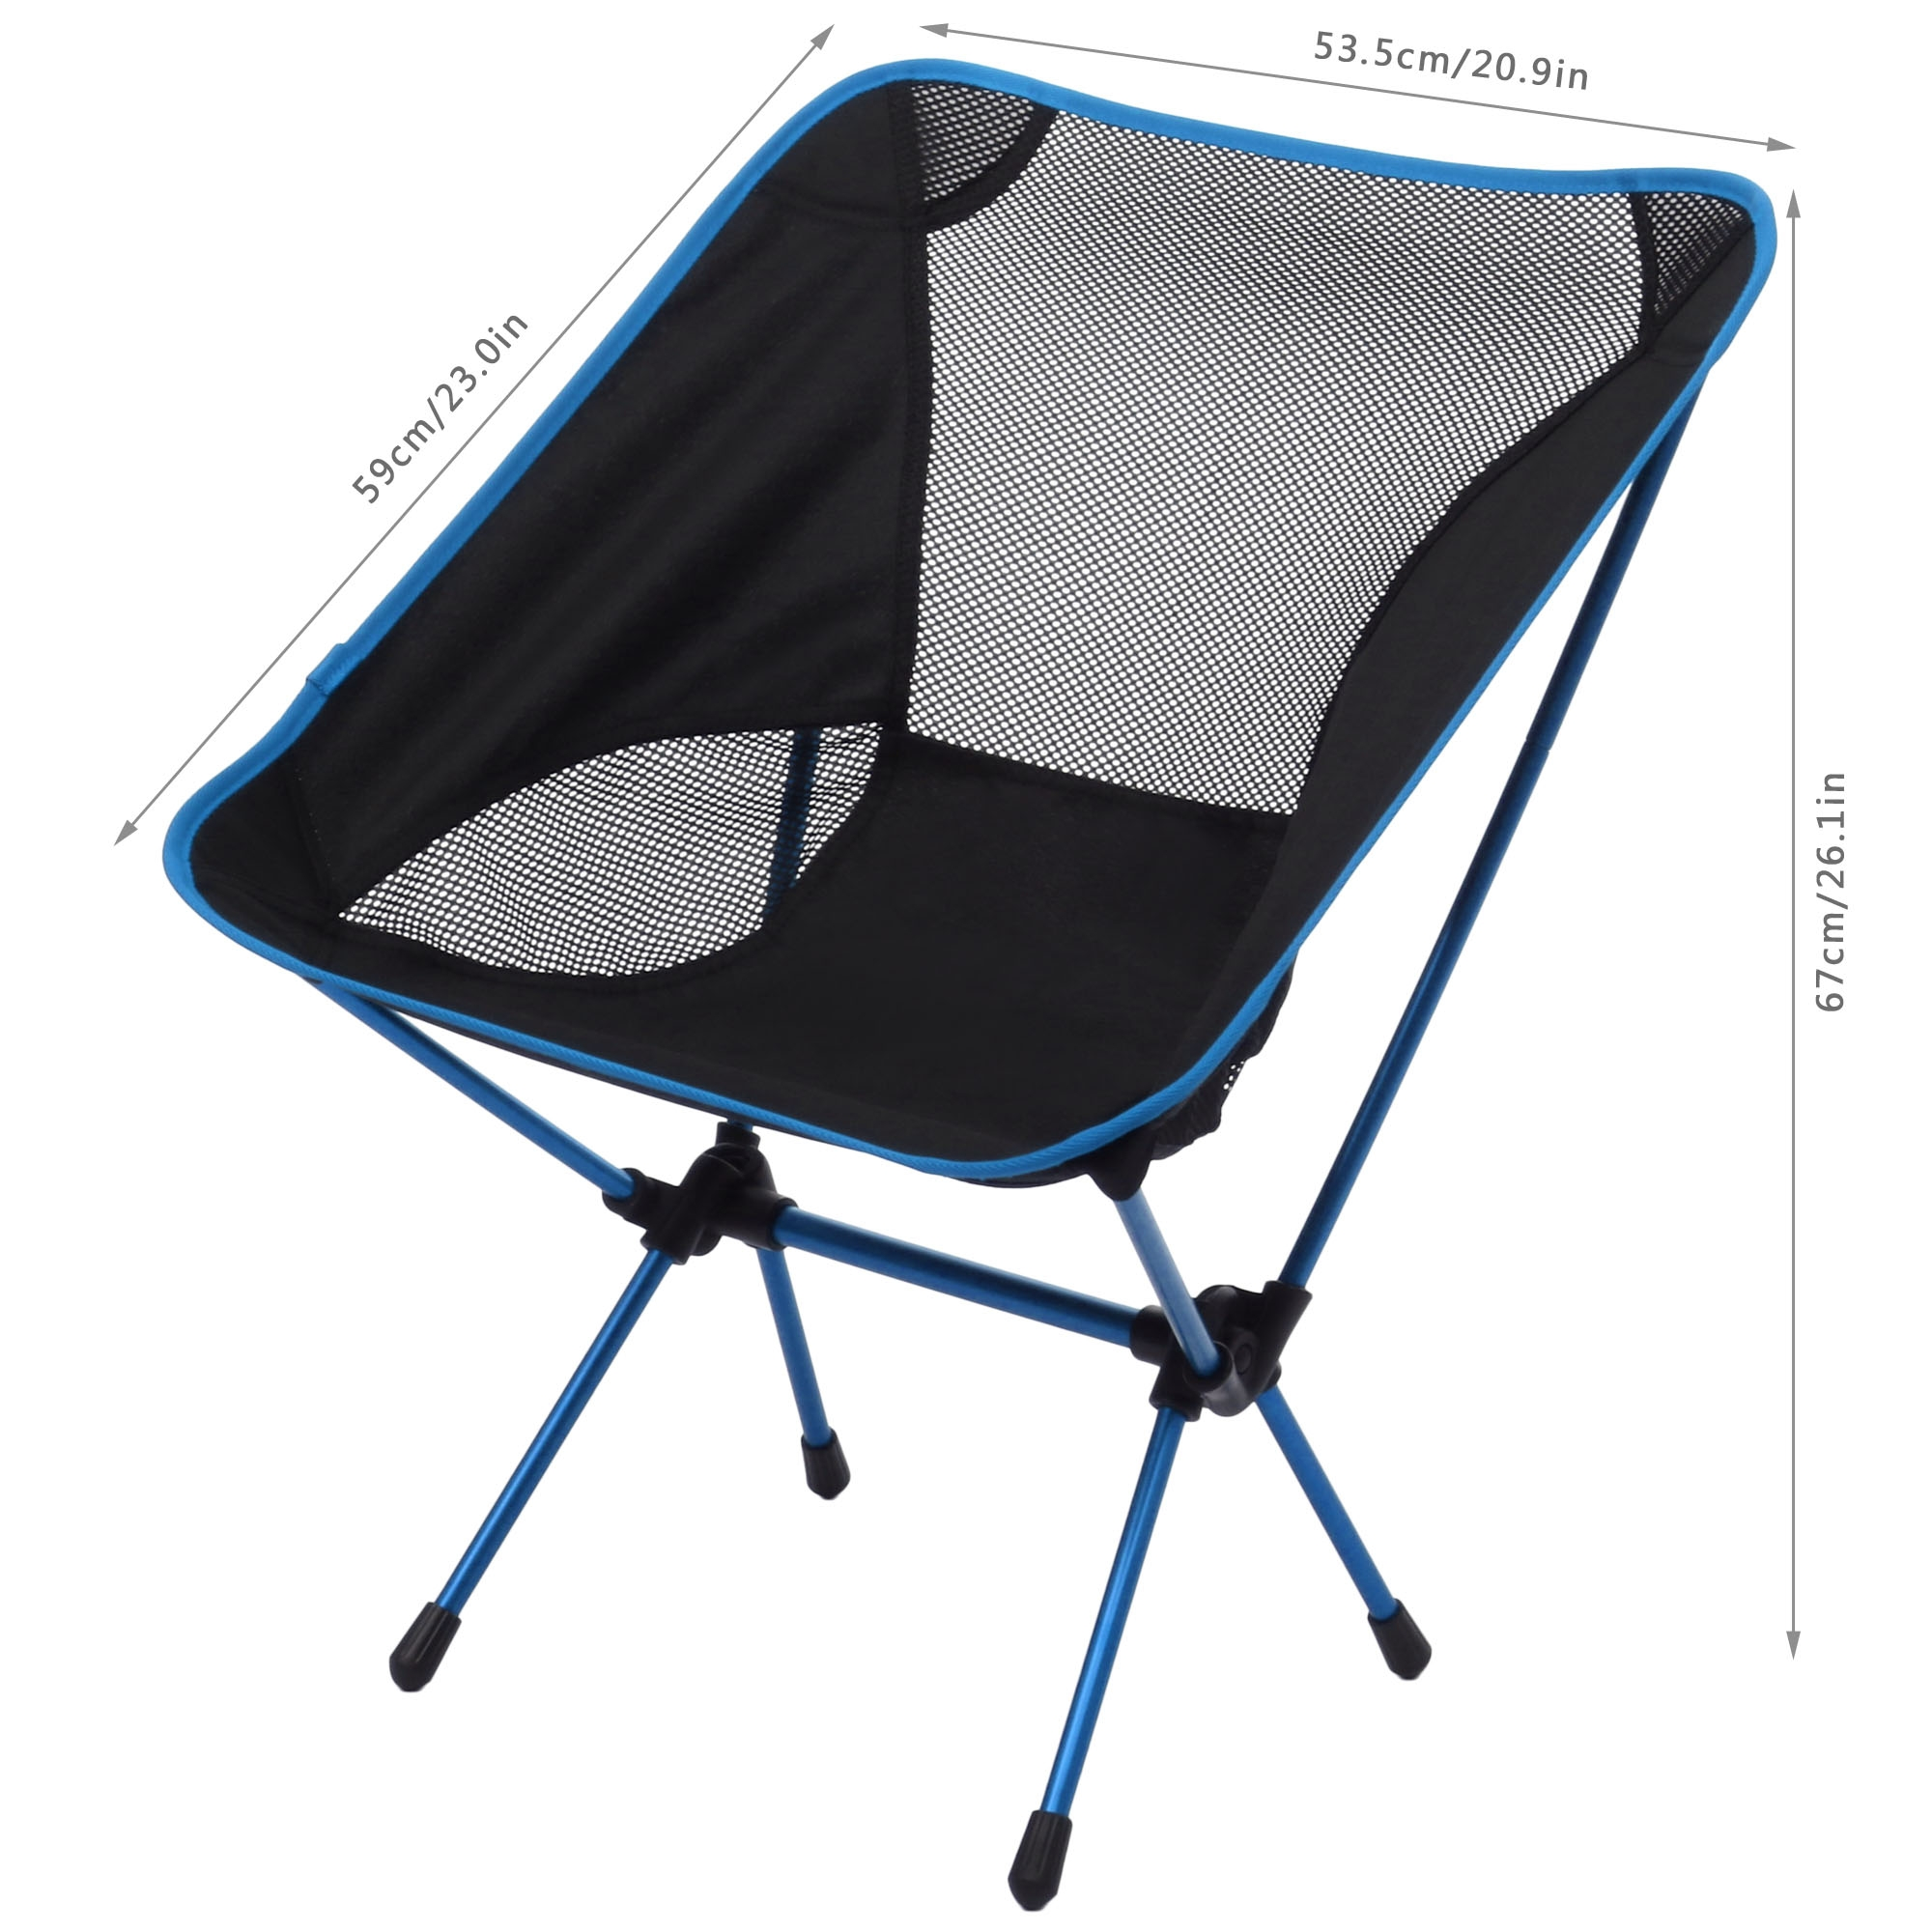 Portable Ultimate Folding Outdoor Camping Fishing Garden Beach Chair Small/Large size BYE